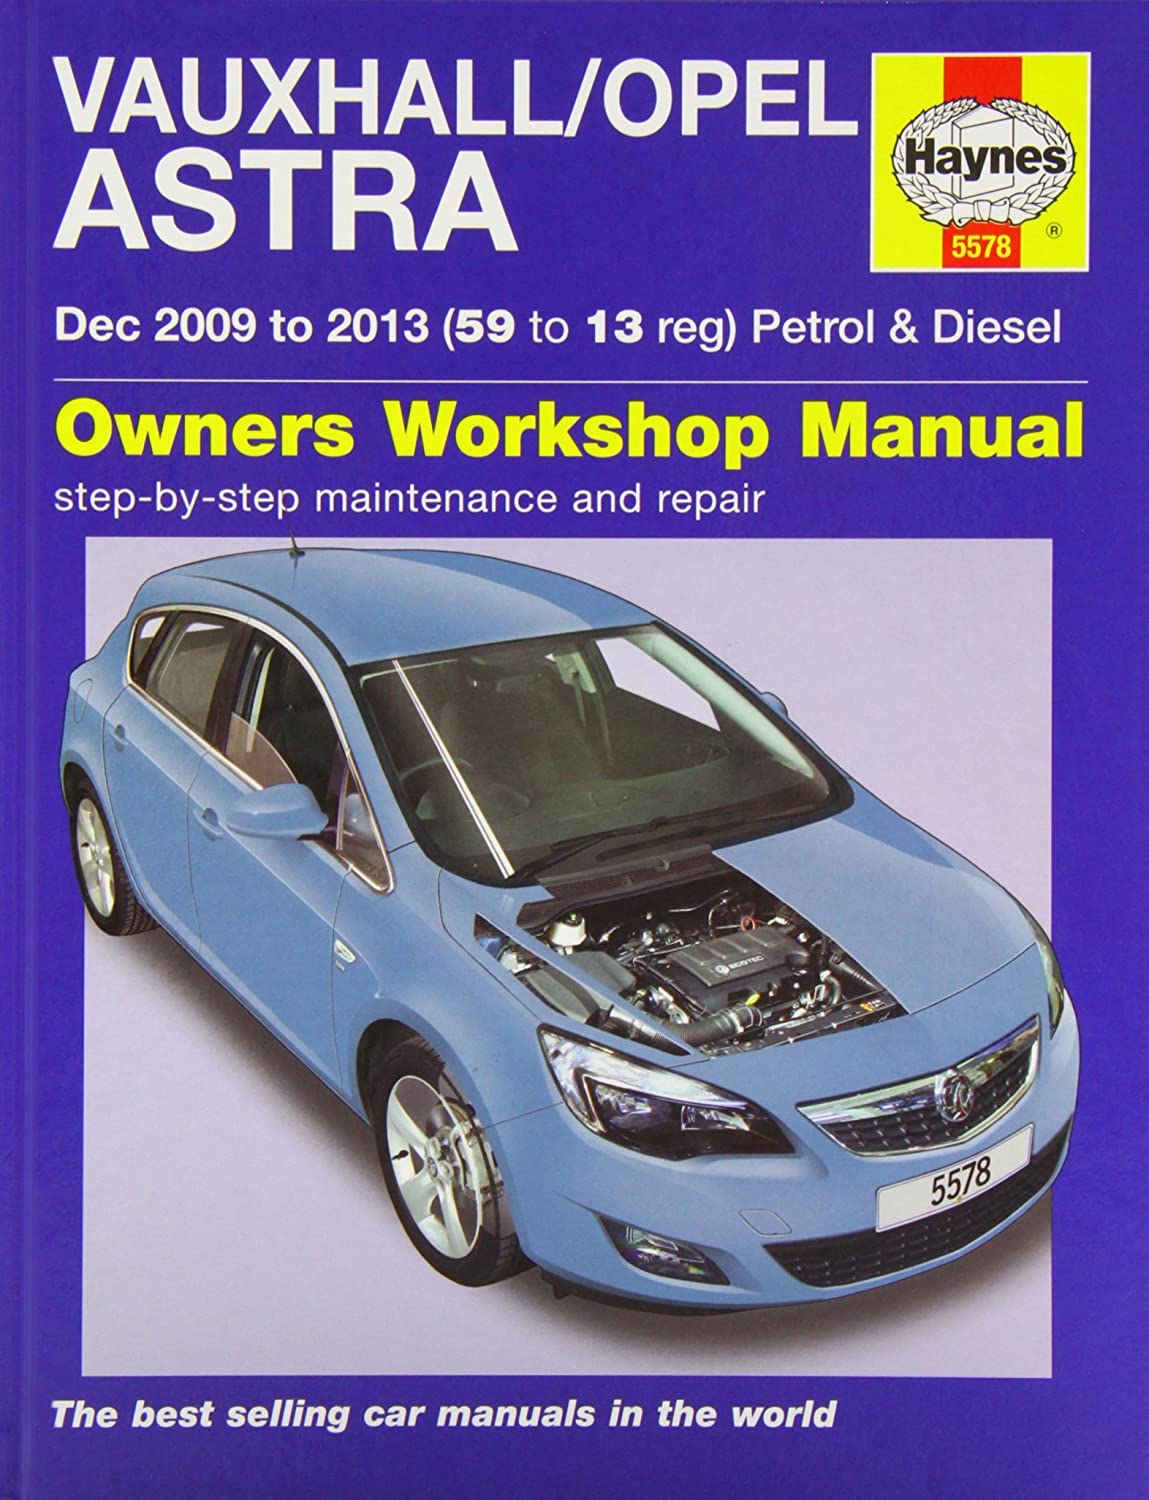 opel astra ts service manual how to and user guide instructions u2022 rh taxibermuda co opel astra g coupe service manual opel astra g coupe service manual